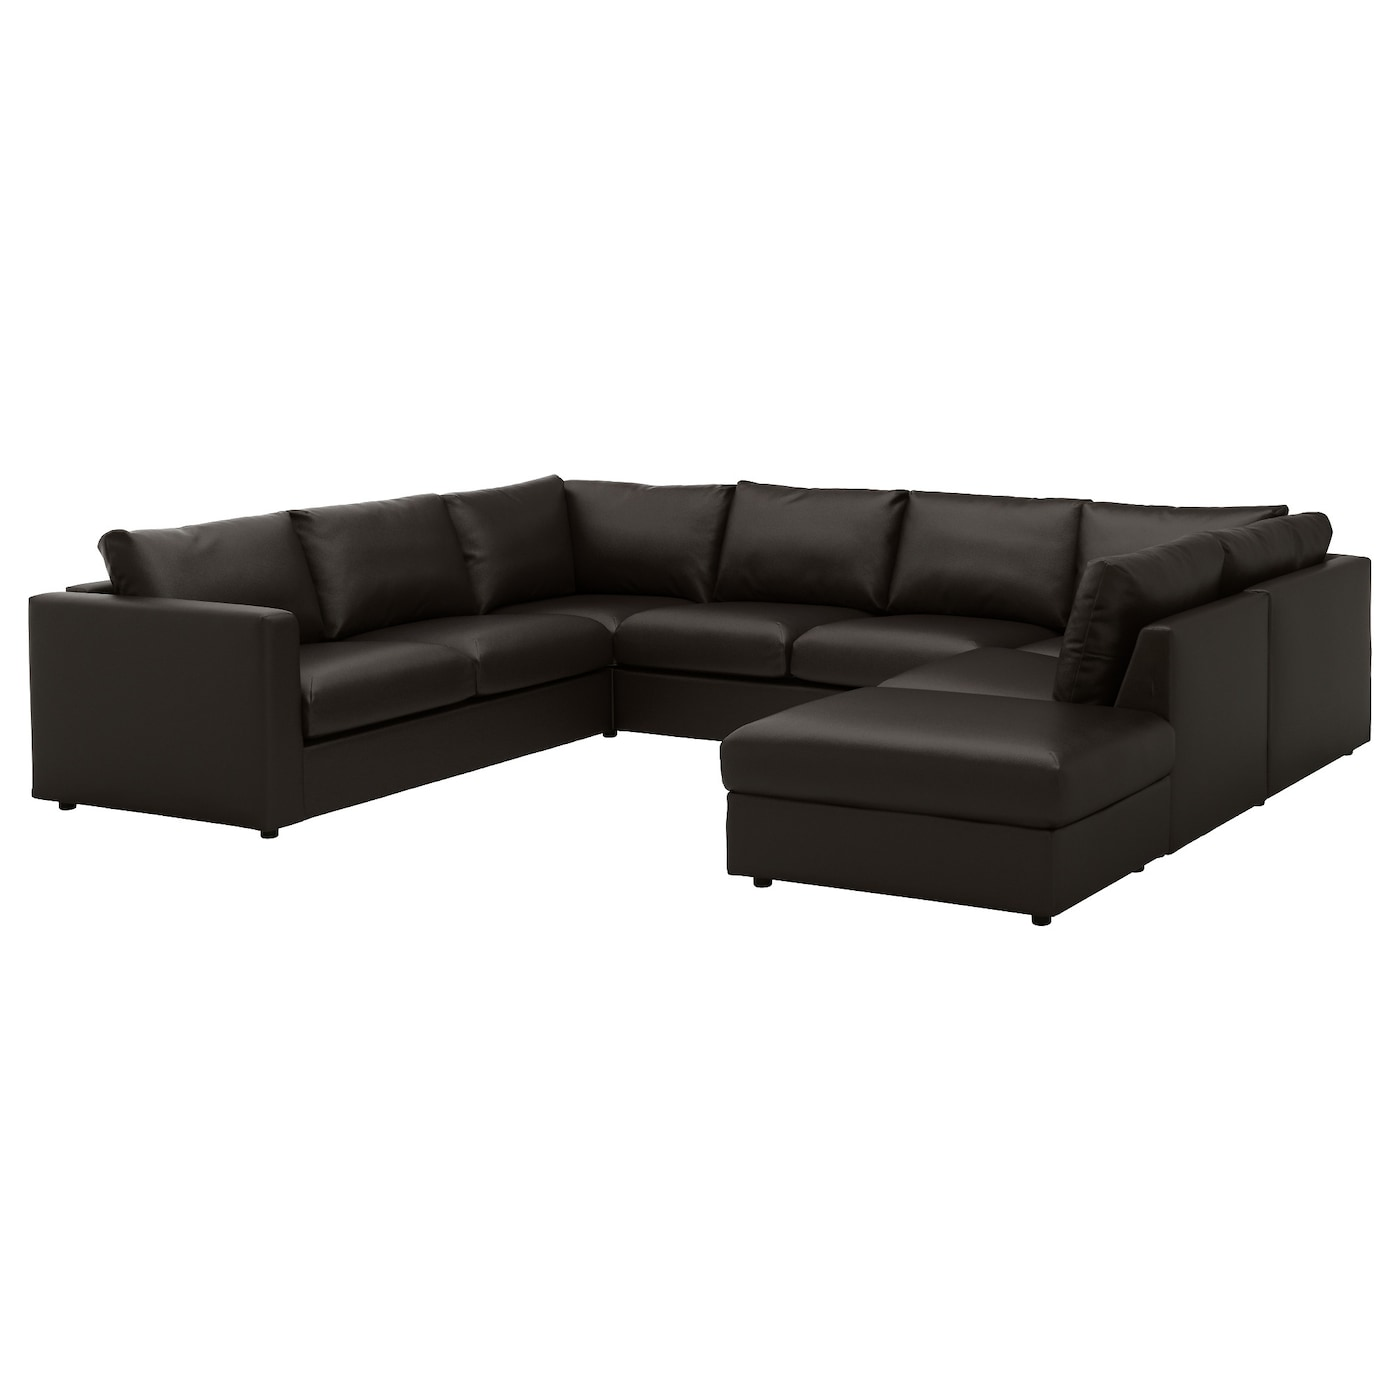 IKEA VIMLE u-shaped sofa, 6 seat 10 year guarantee. Read about the terms in the guarantee brochure.